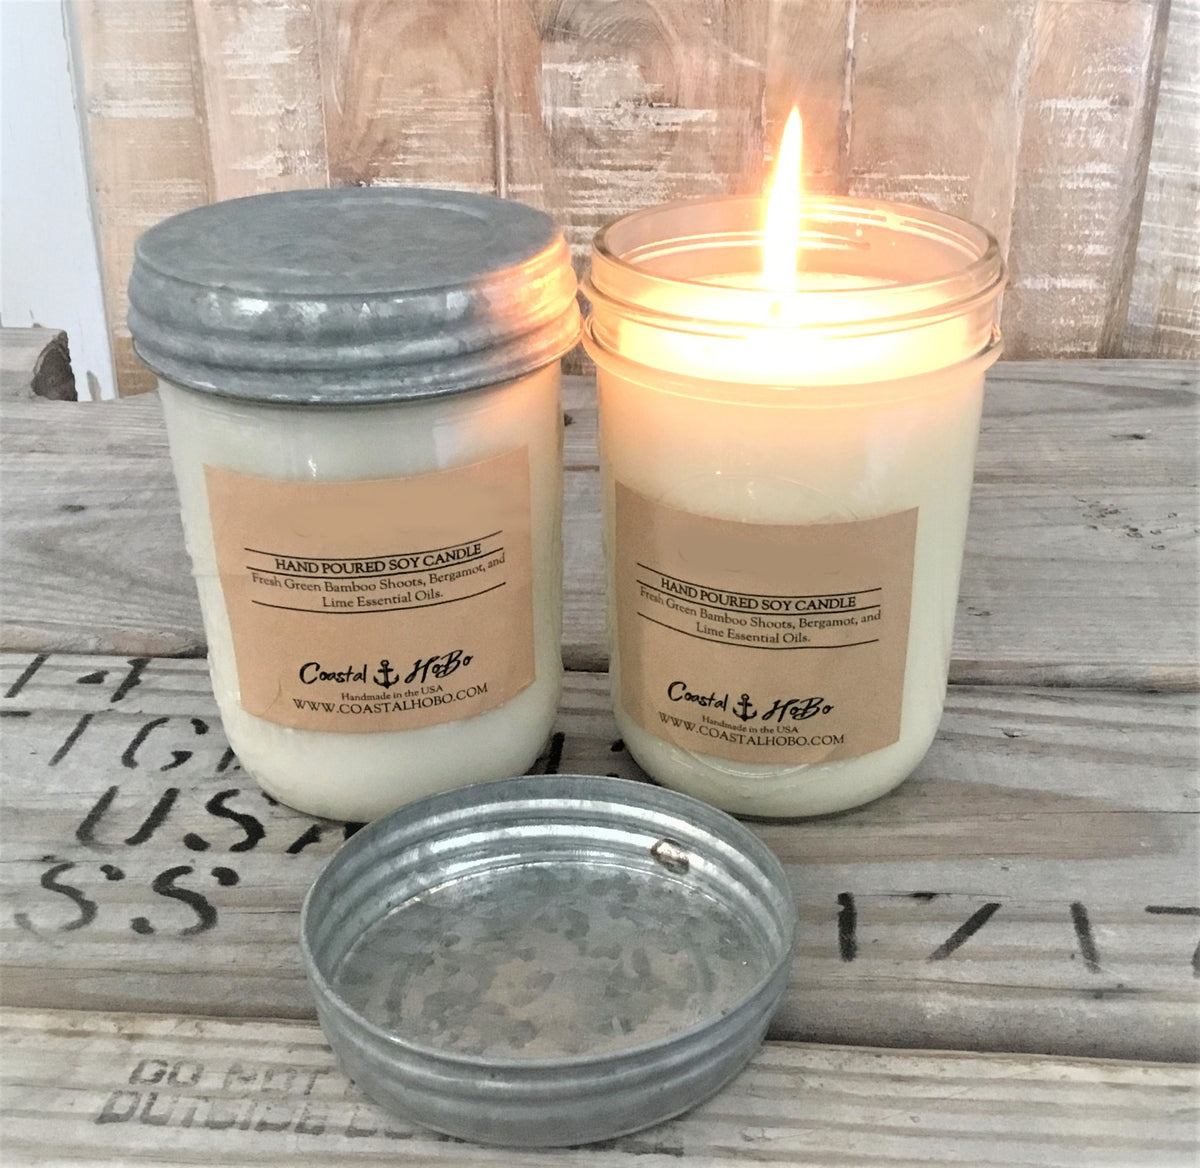 Nefertiti Candle - 16 oz Mason Jar Soy Candle